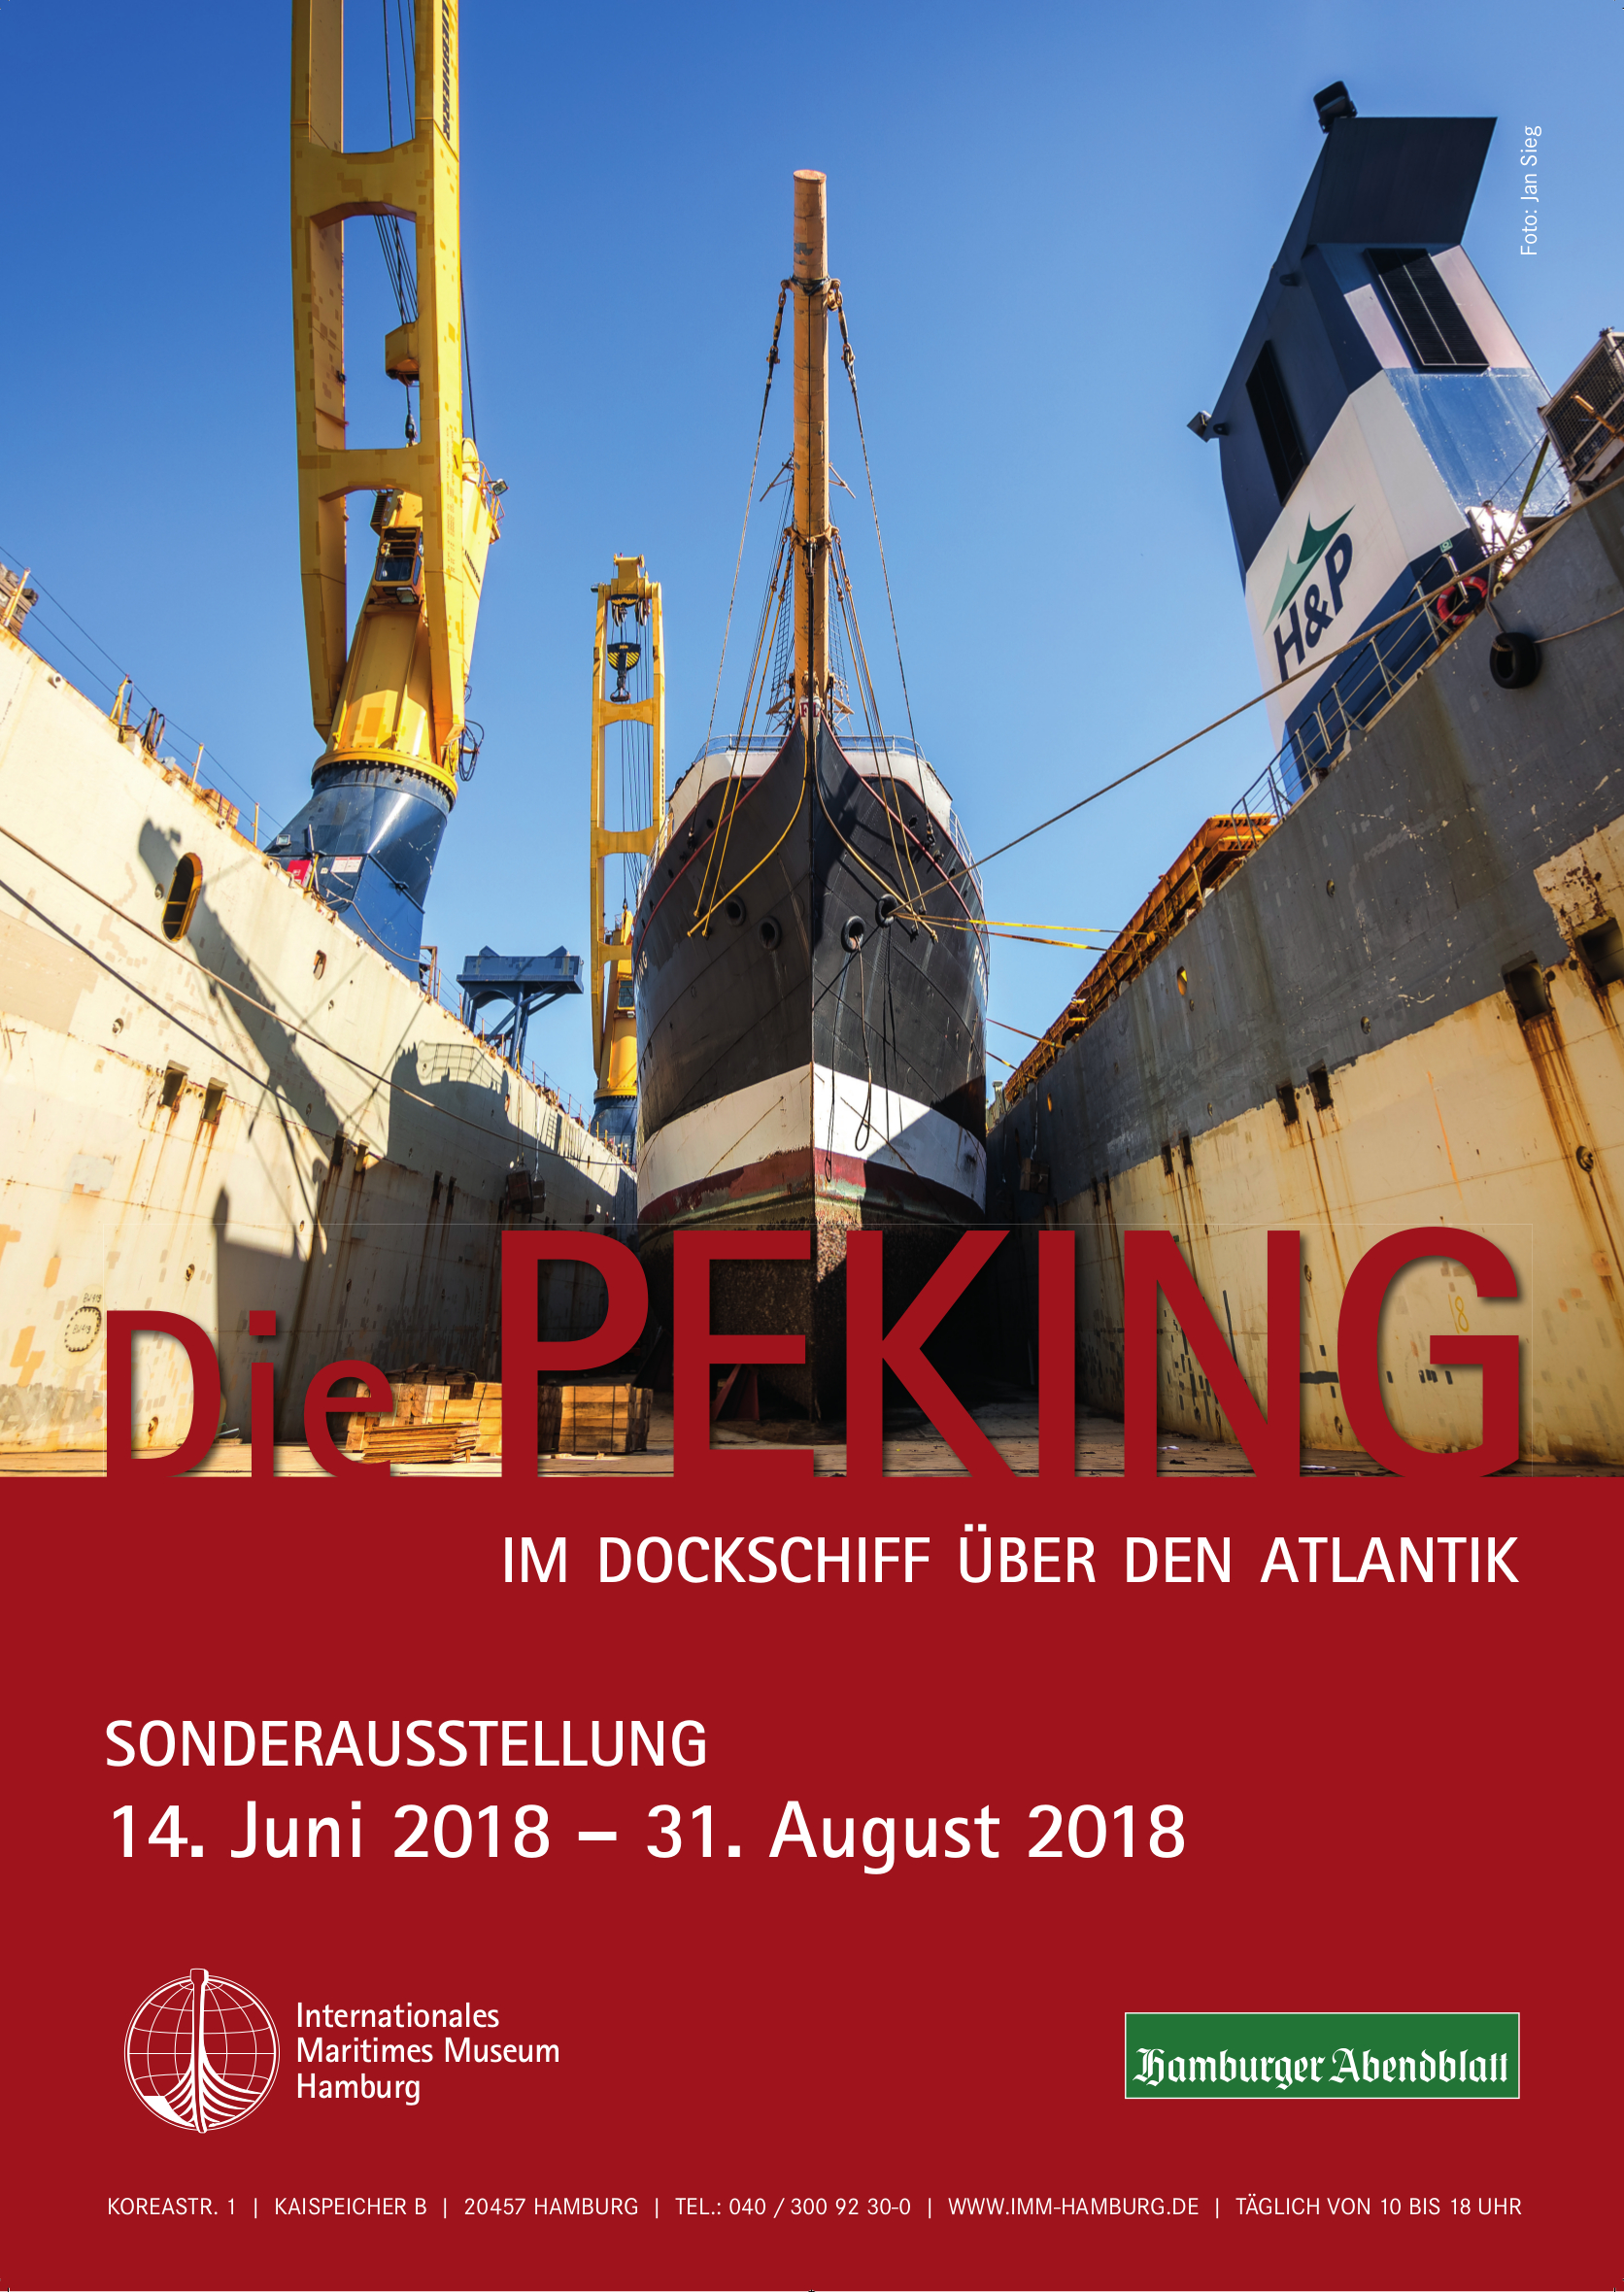 Peking Schiff Flying P-Liner Ausstellung Sonderausstellung Atlantik Fotografie Internationales Maritimes Museum Hamburg 2018 Plakat